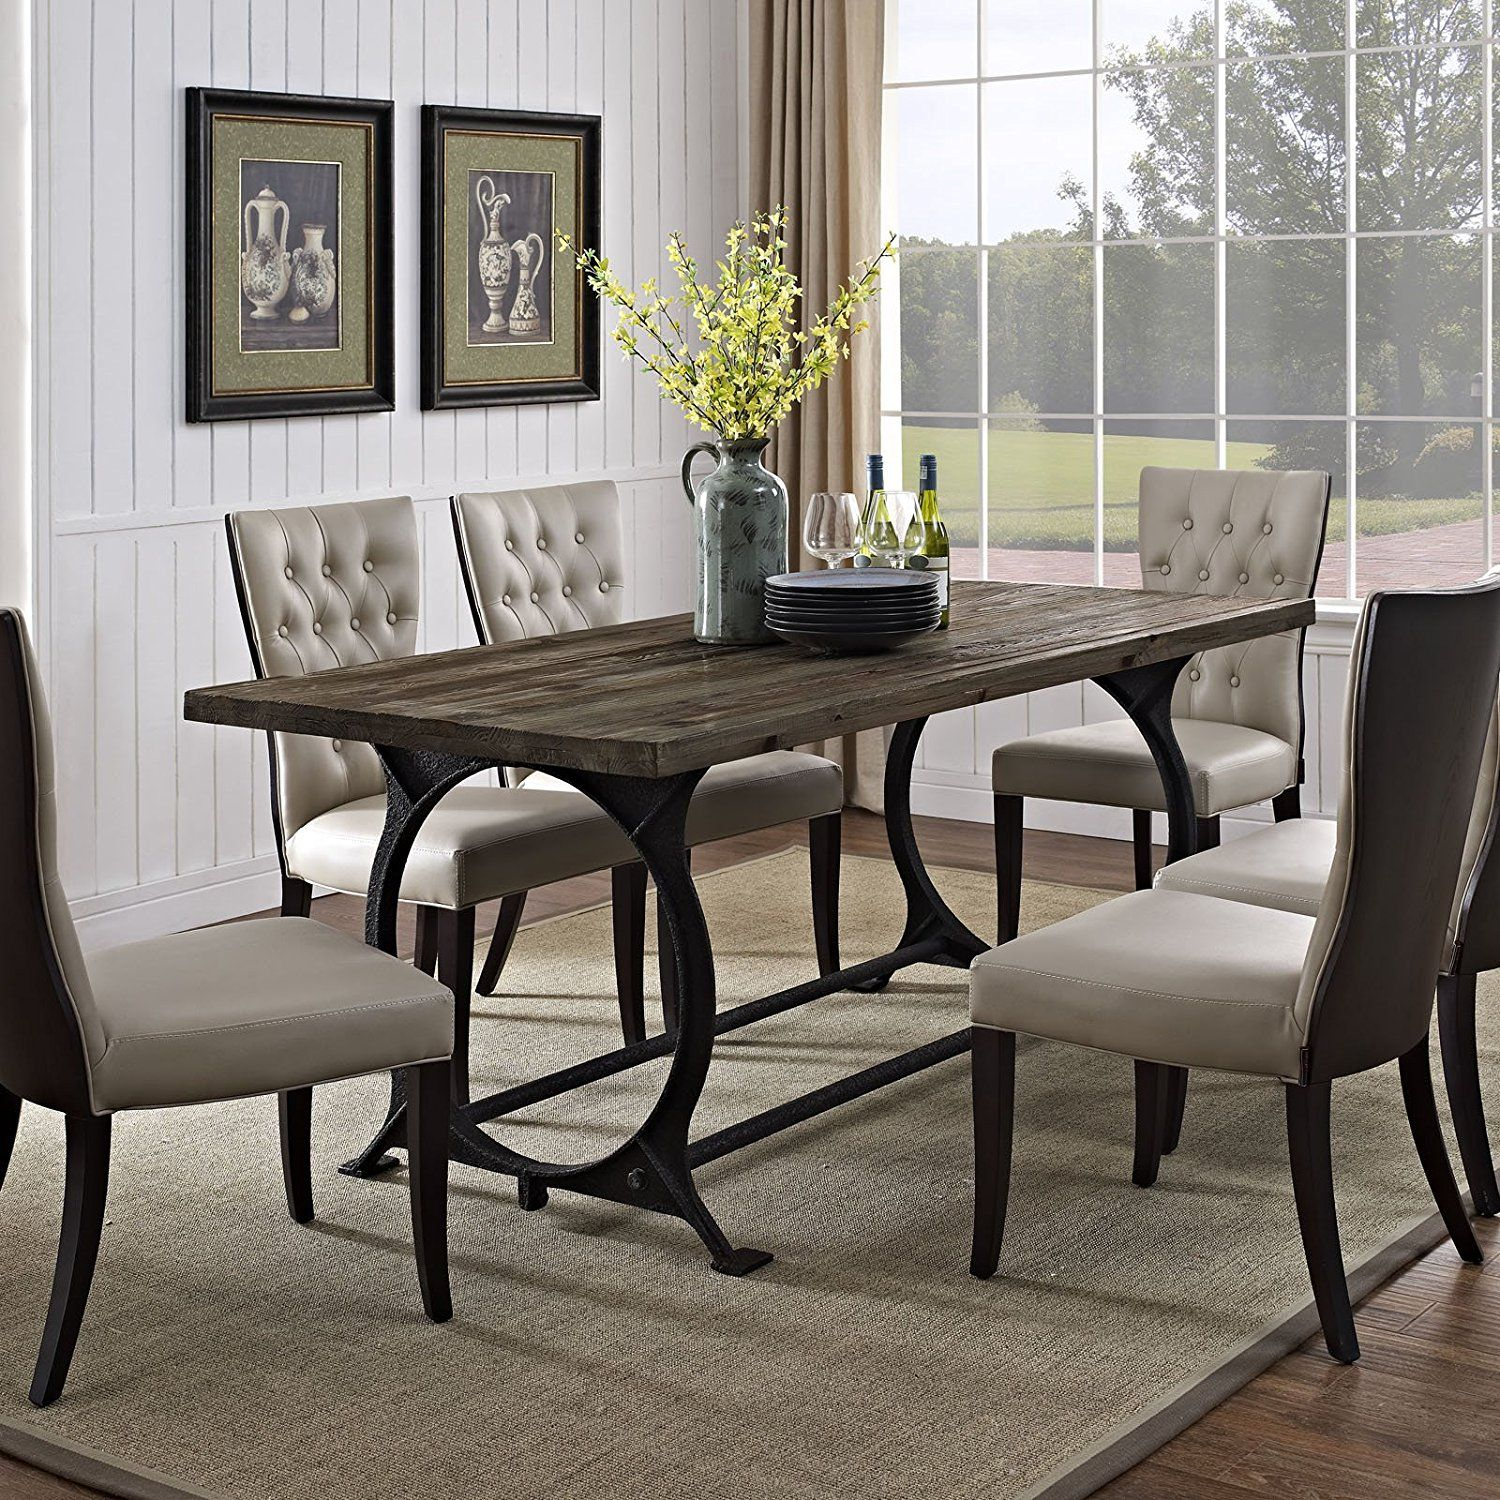 Pin By Annora On Home Interior Modern Dining Table Dining Table